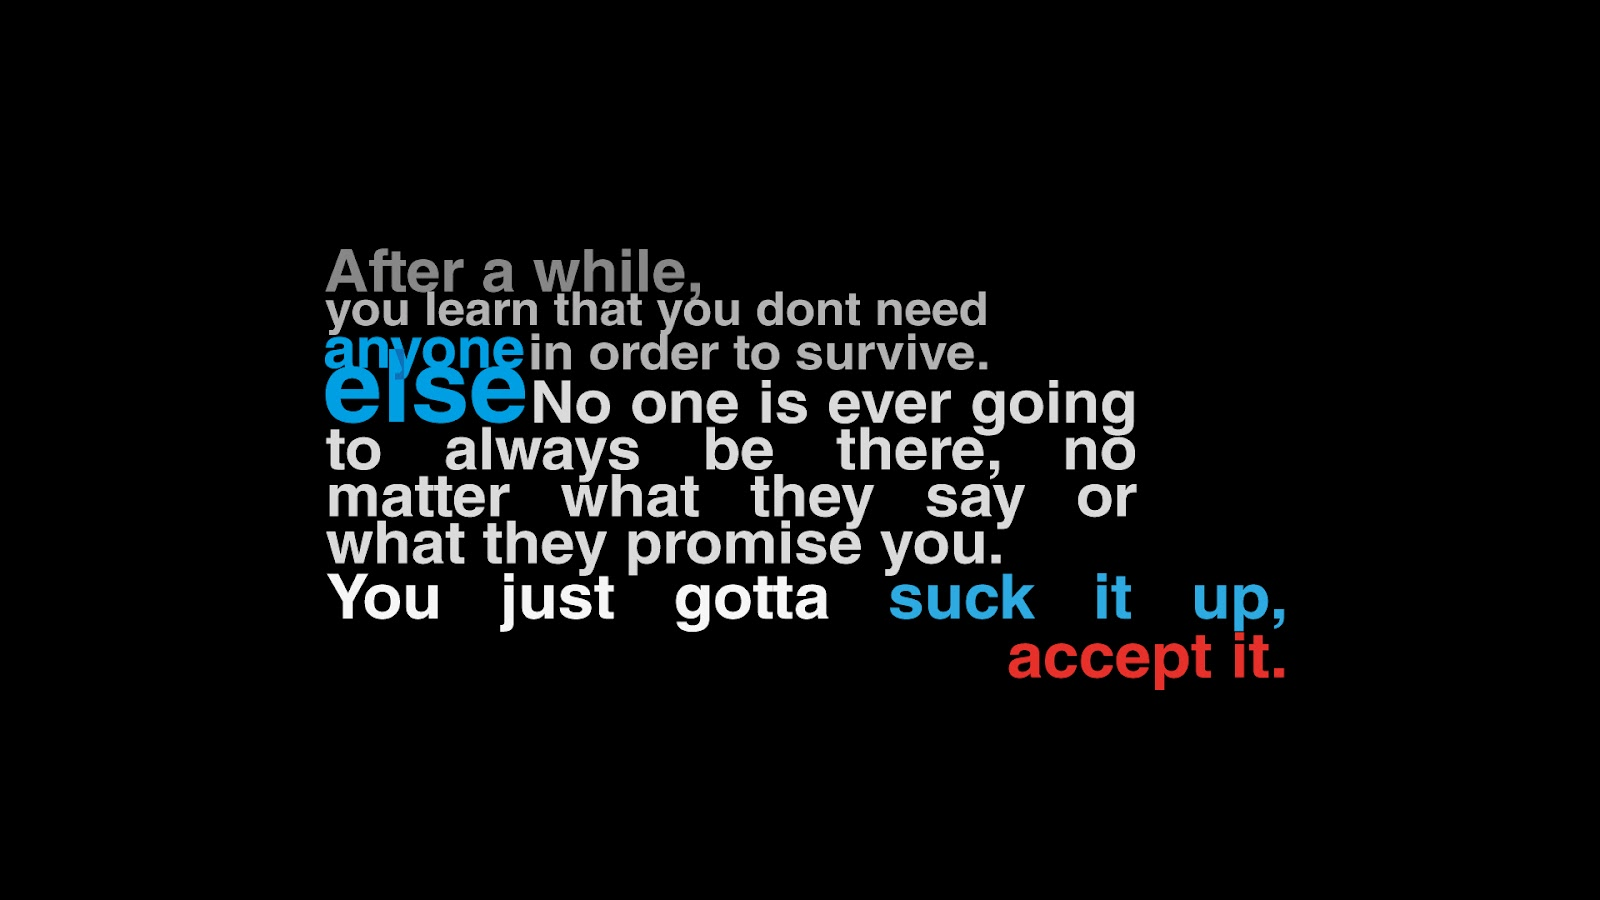 Wallpapers with epic quotes part 1 monkeywiththehat - Funny quotes in hd ...